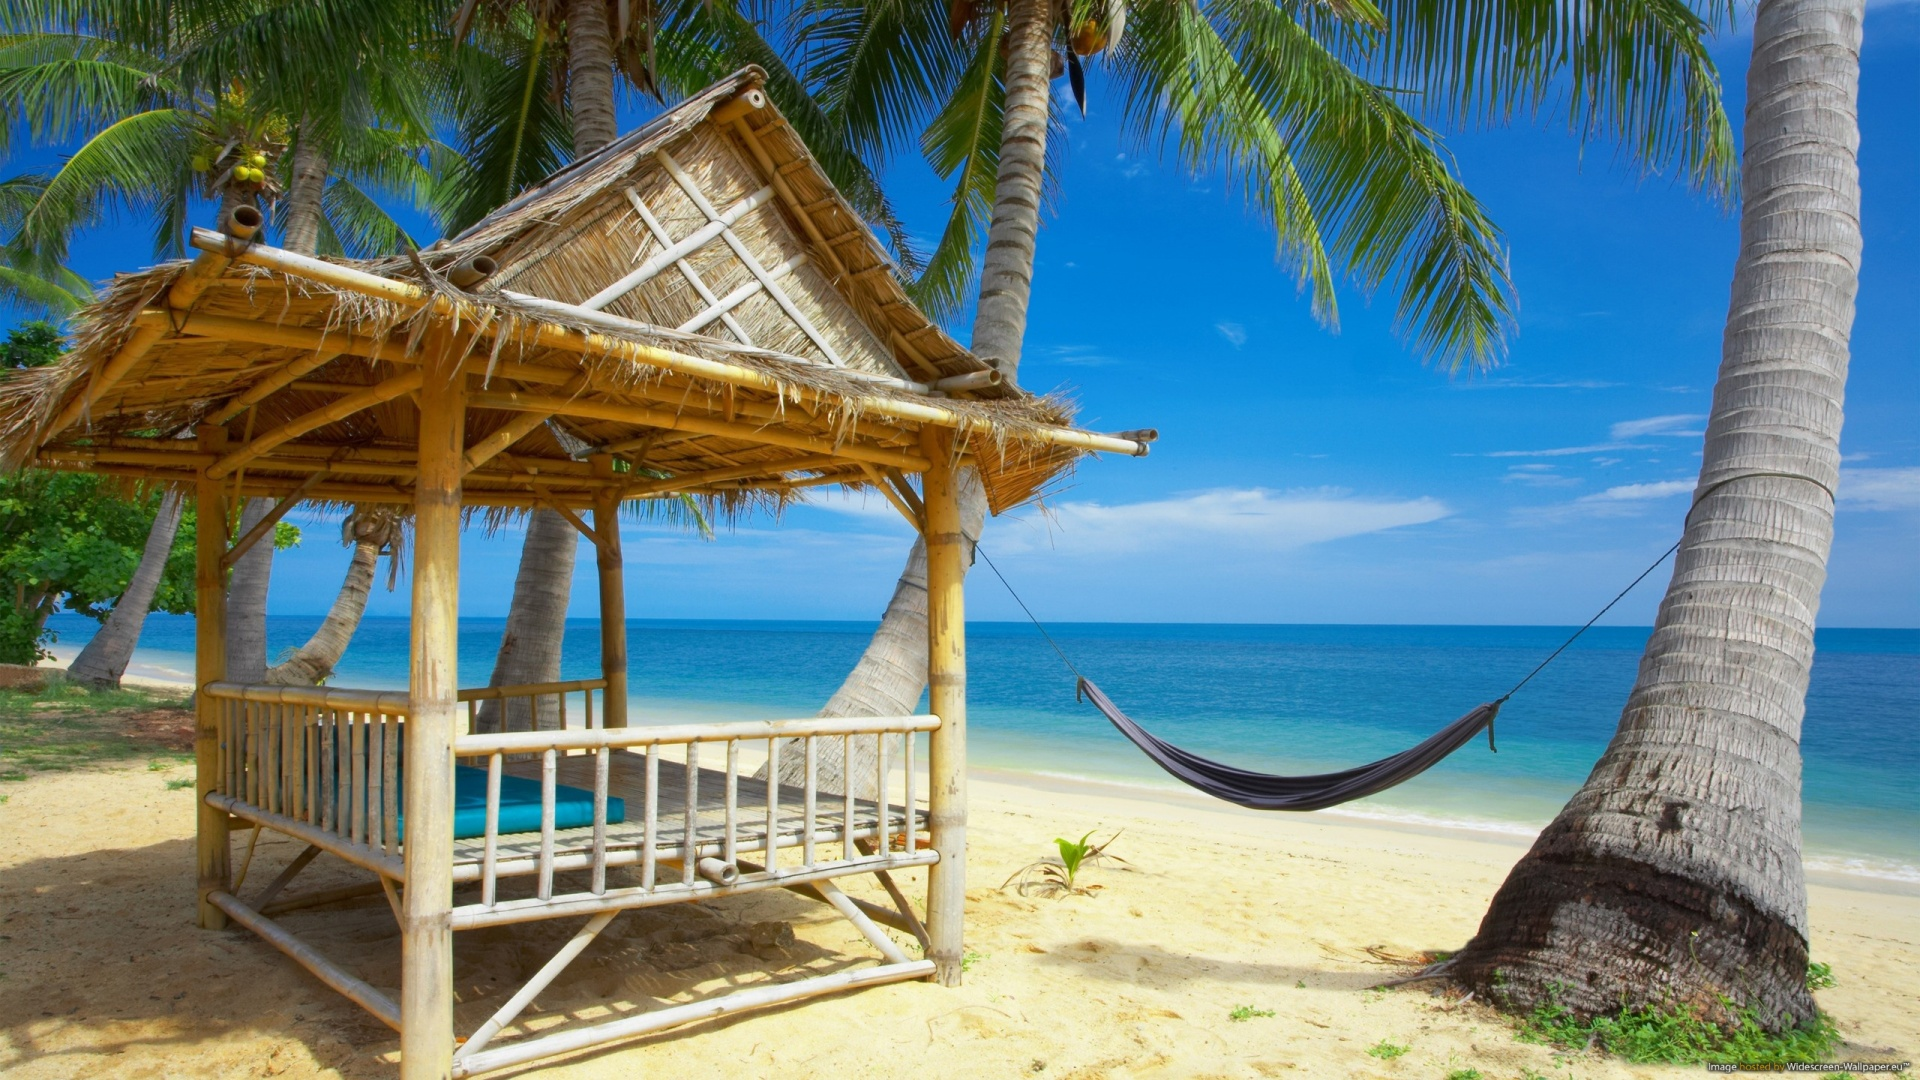 Tropical Beach Wallpaper Wallpapers9 1920x1080